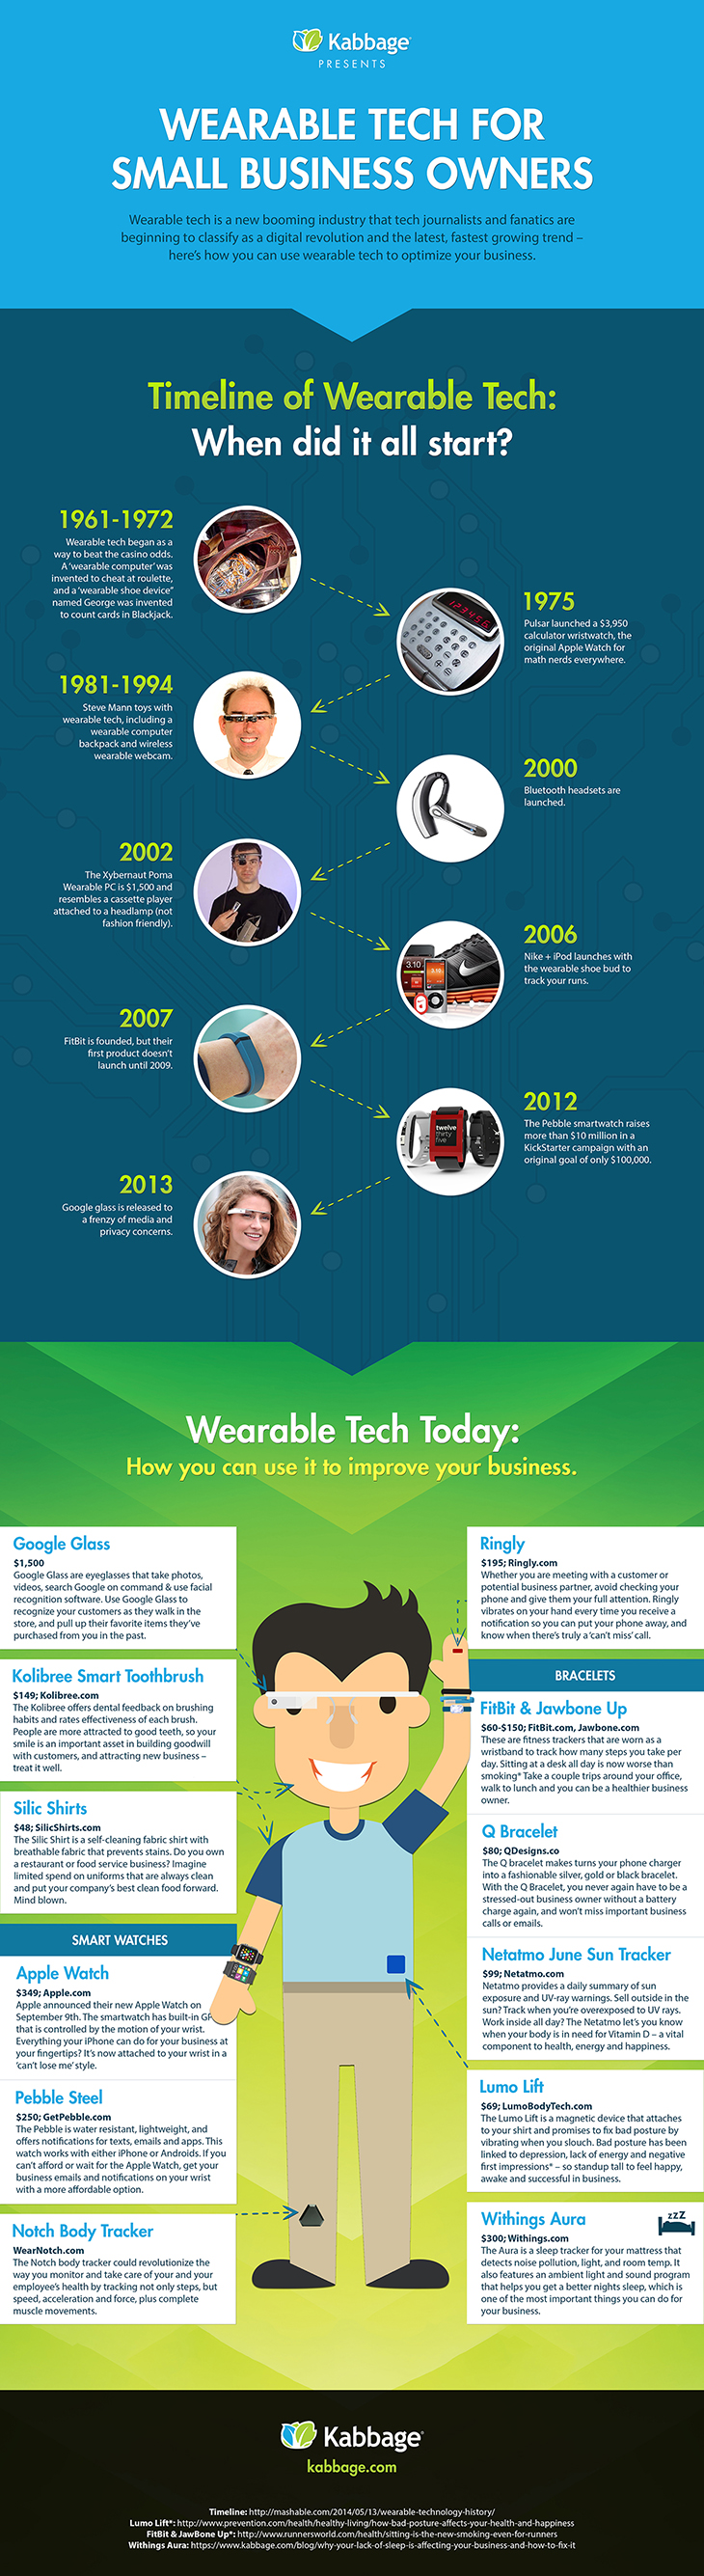 Wearable Tech for Small Business Owners infographic